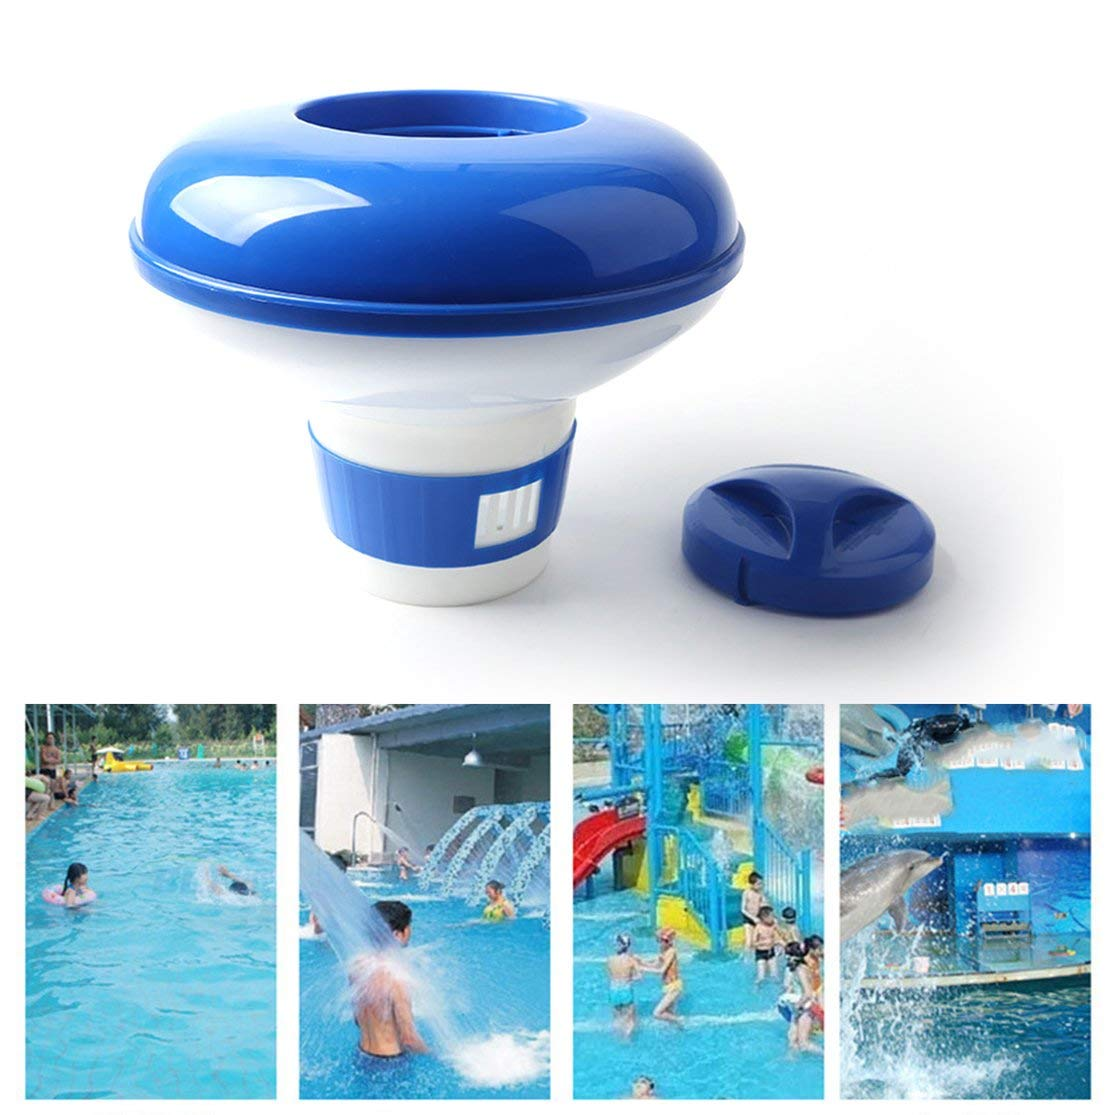 LouiseEvel215 Chlorine Chemical Tablet Floating Dispenser Bromine Tablet Holder Automatic Pool Chemical Dispenser for Swimming Pool Spa